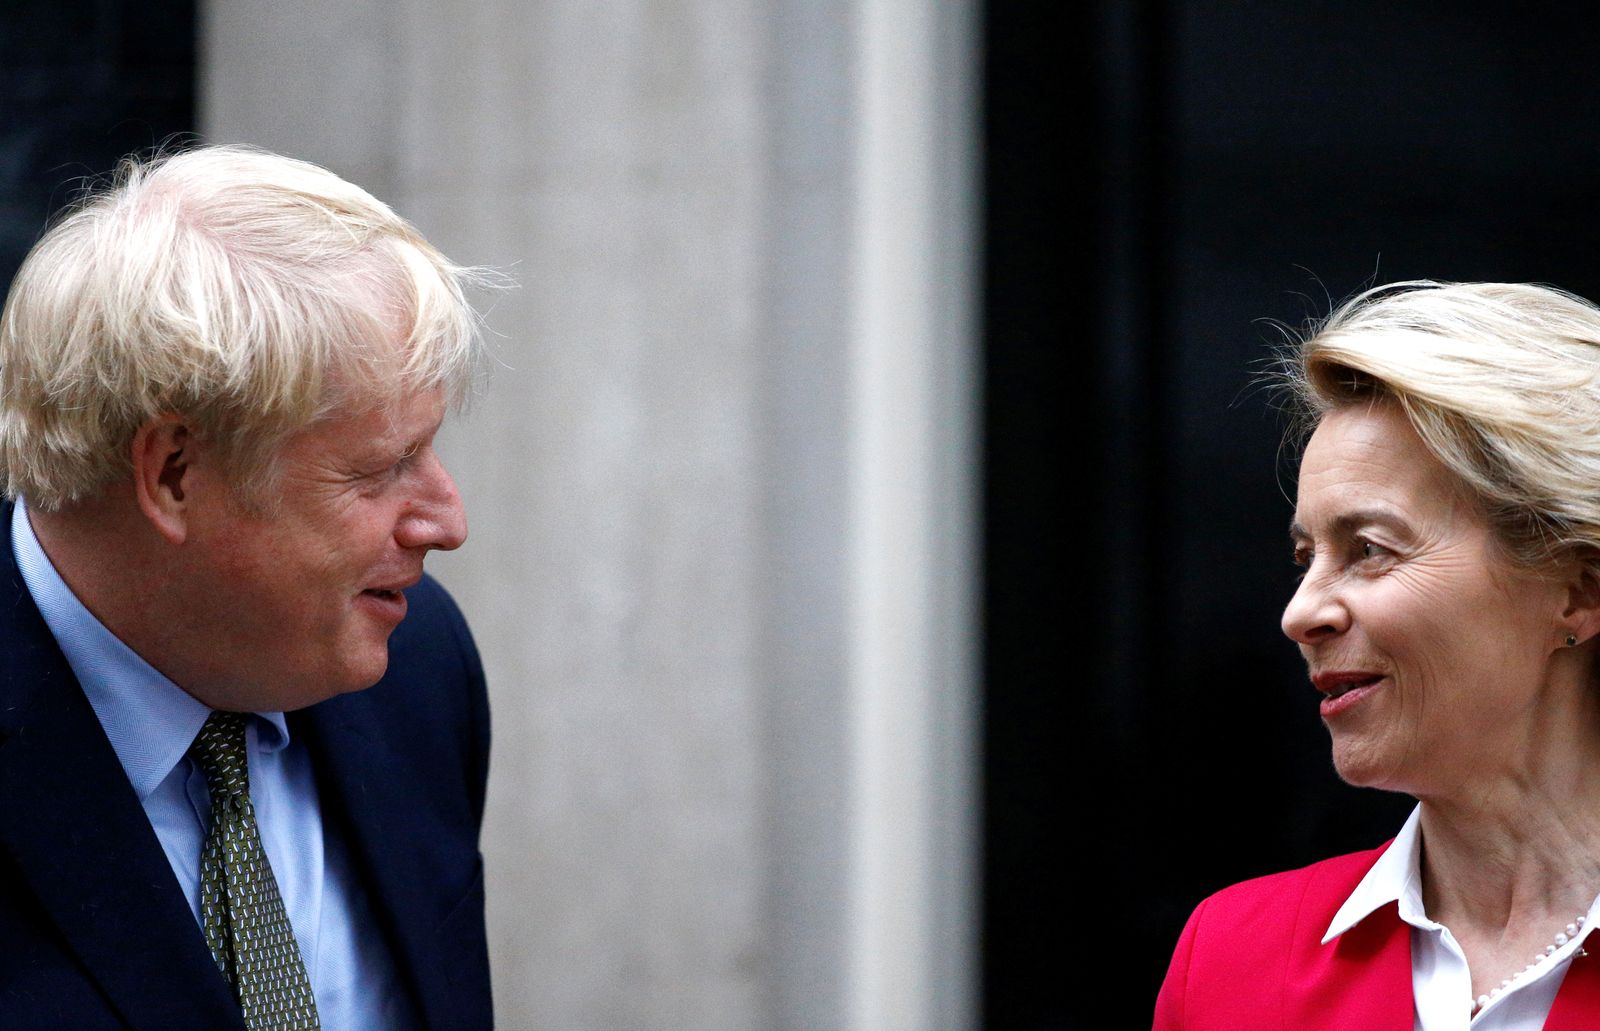 Britain's PM Johnson meets European Commission President von der Leyen in London